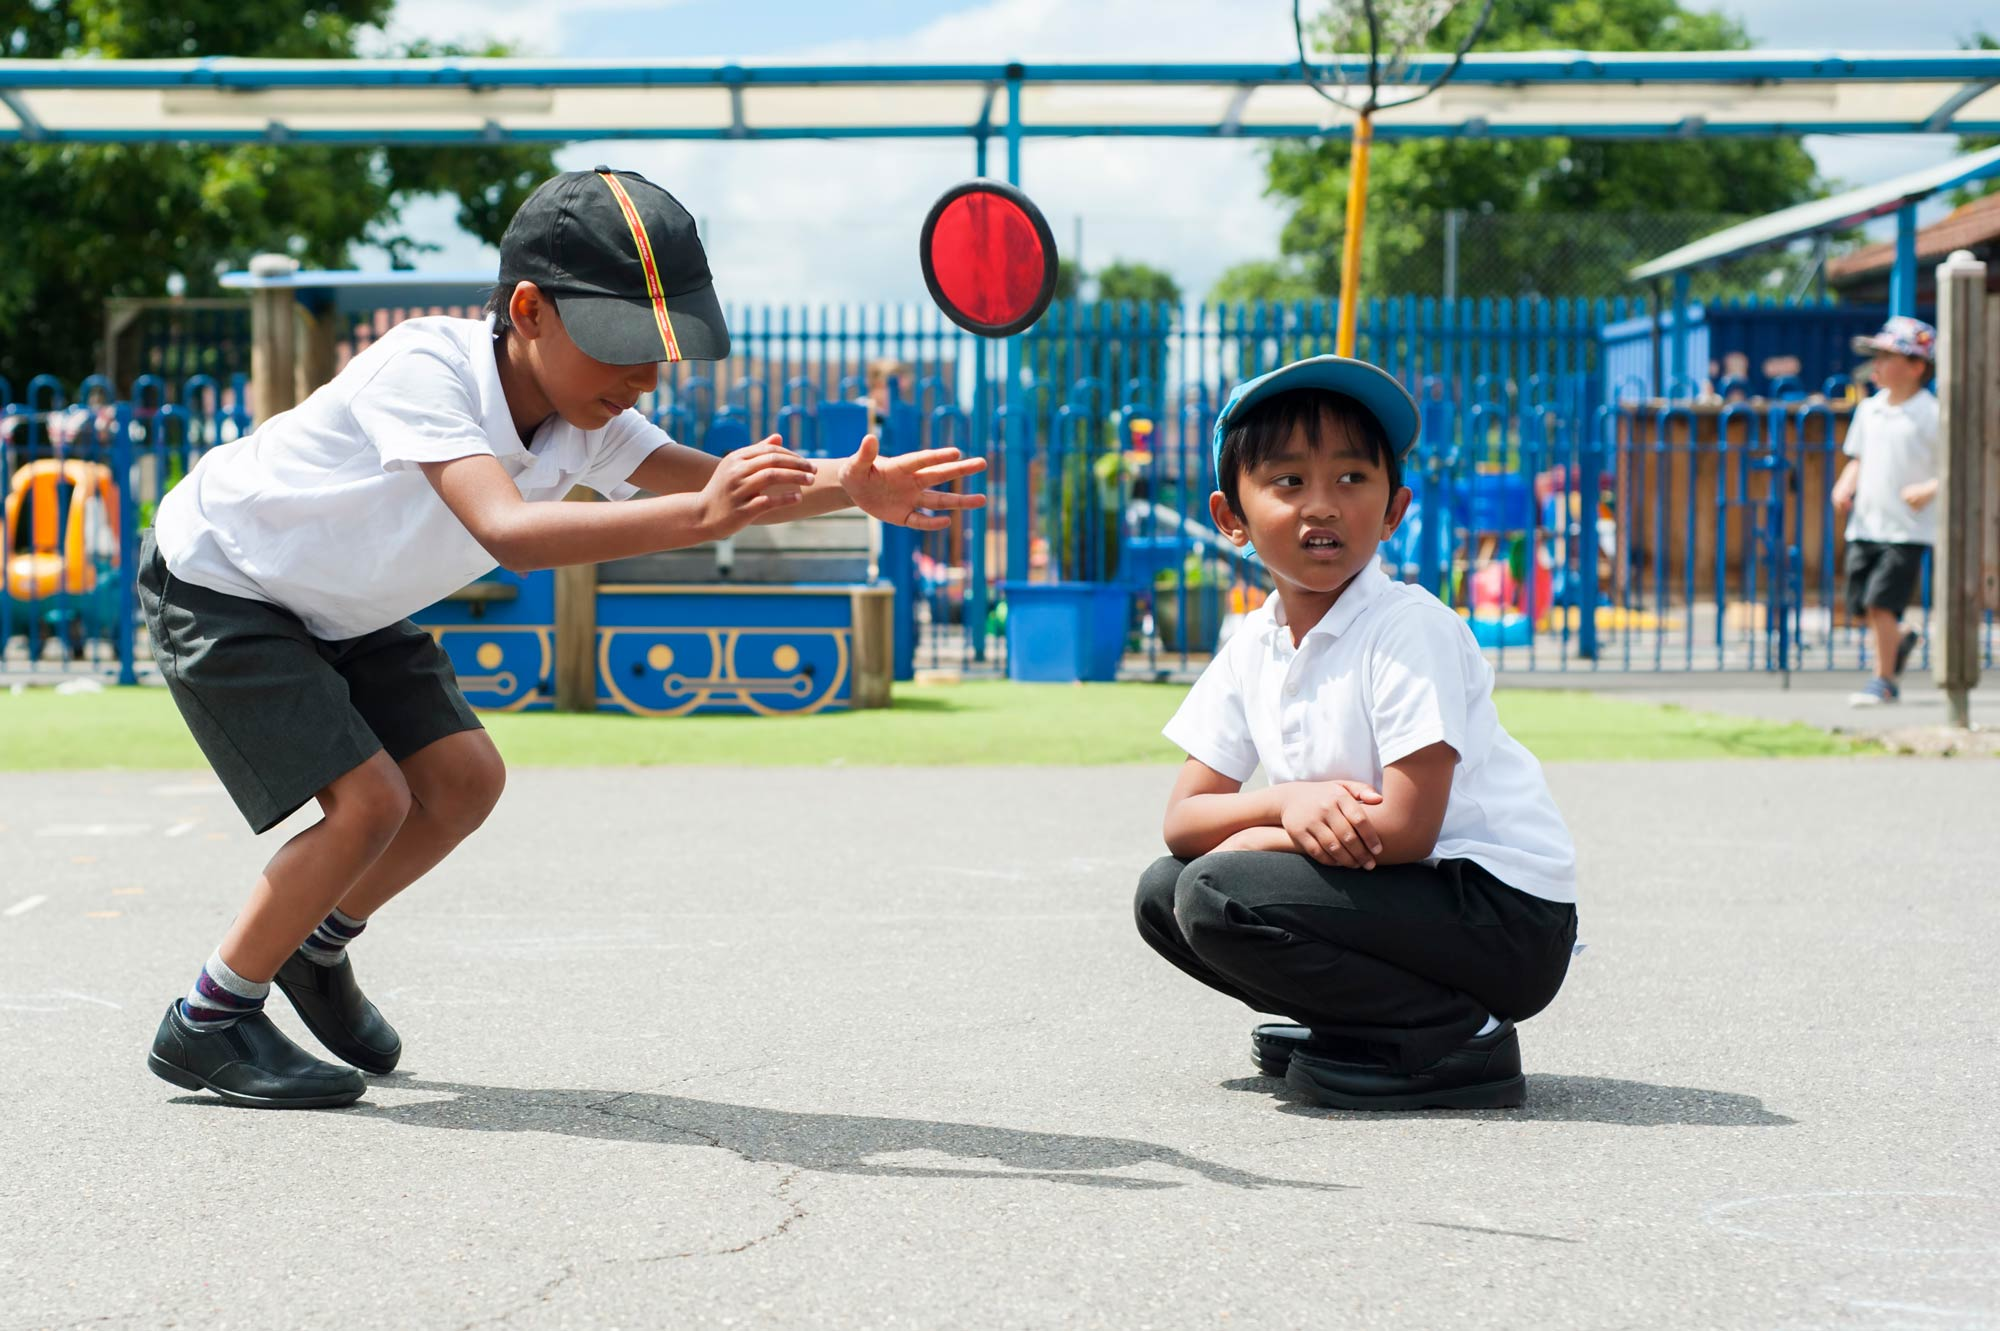 School pupils in the playground